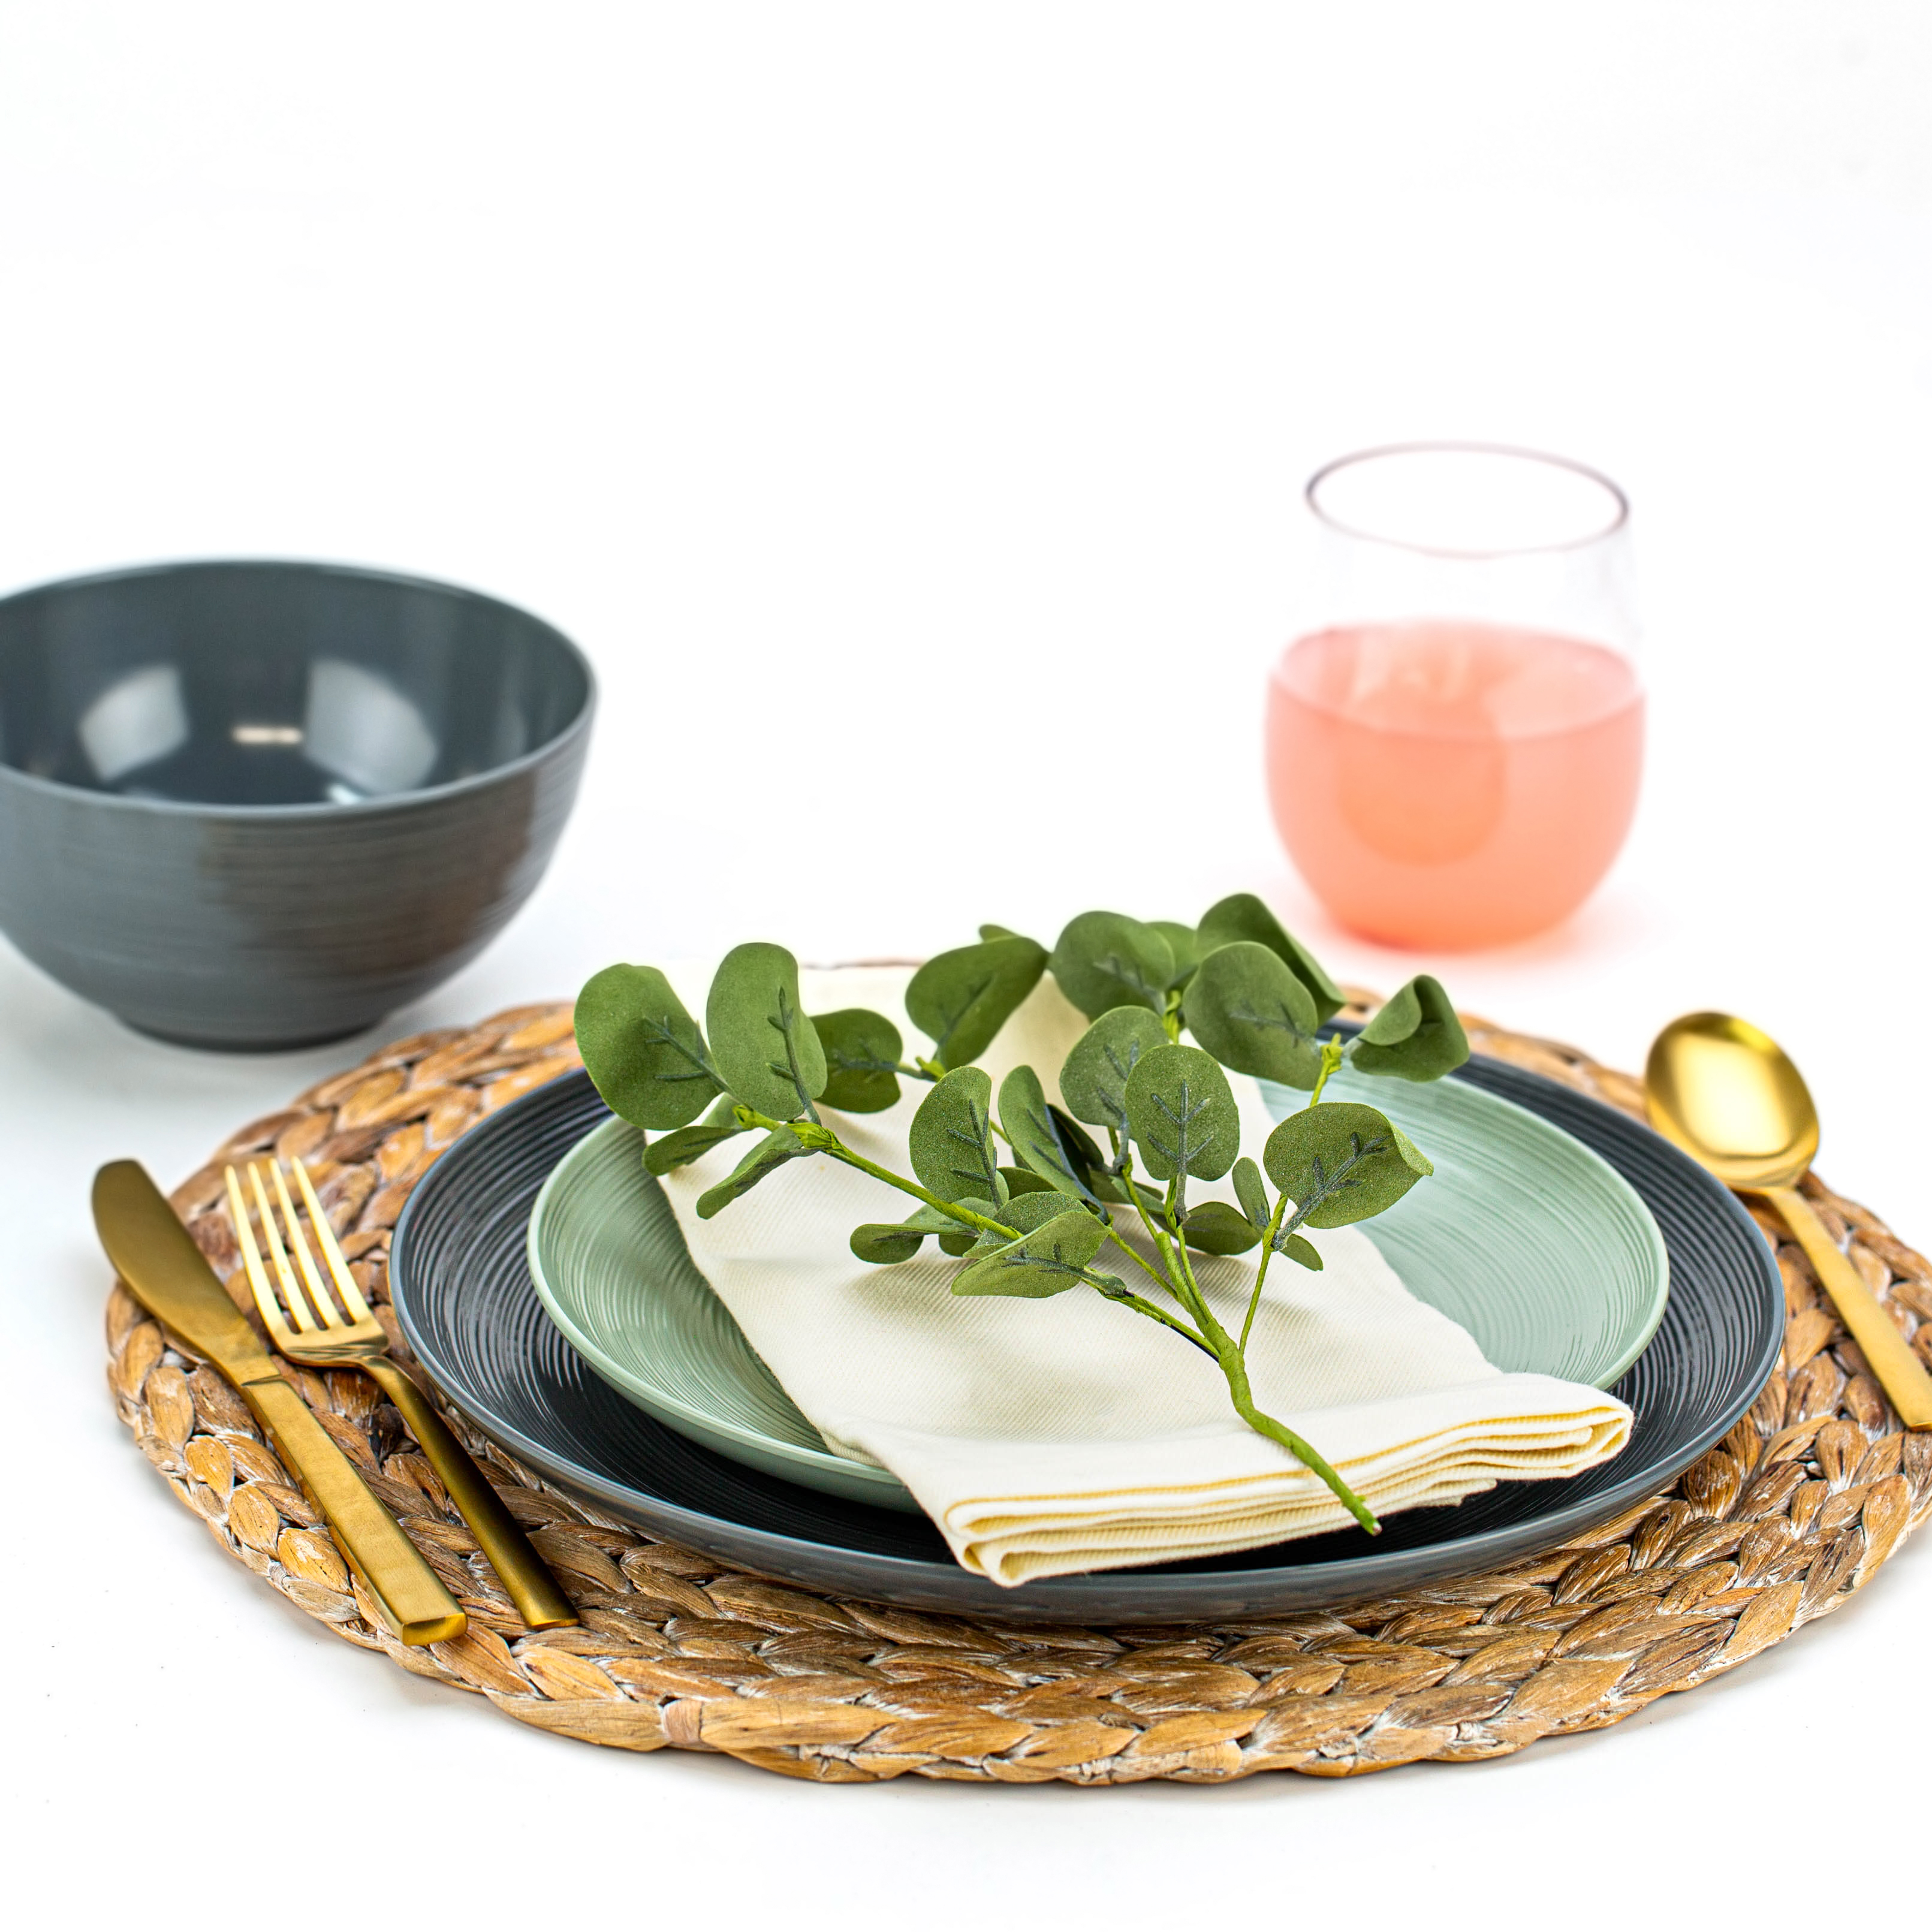 American Conventional Plate & Bowl Sets, Charcoal, 12-piece set slideshow image 8